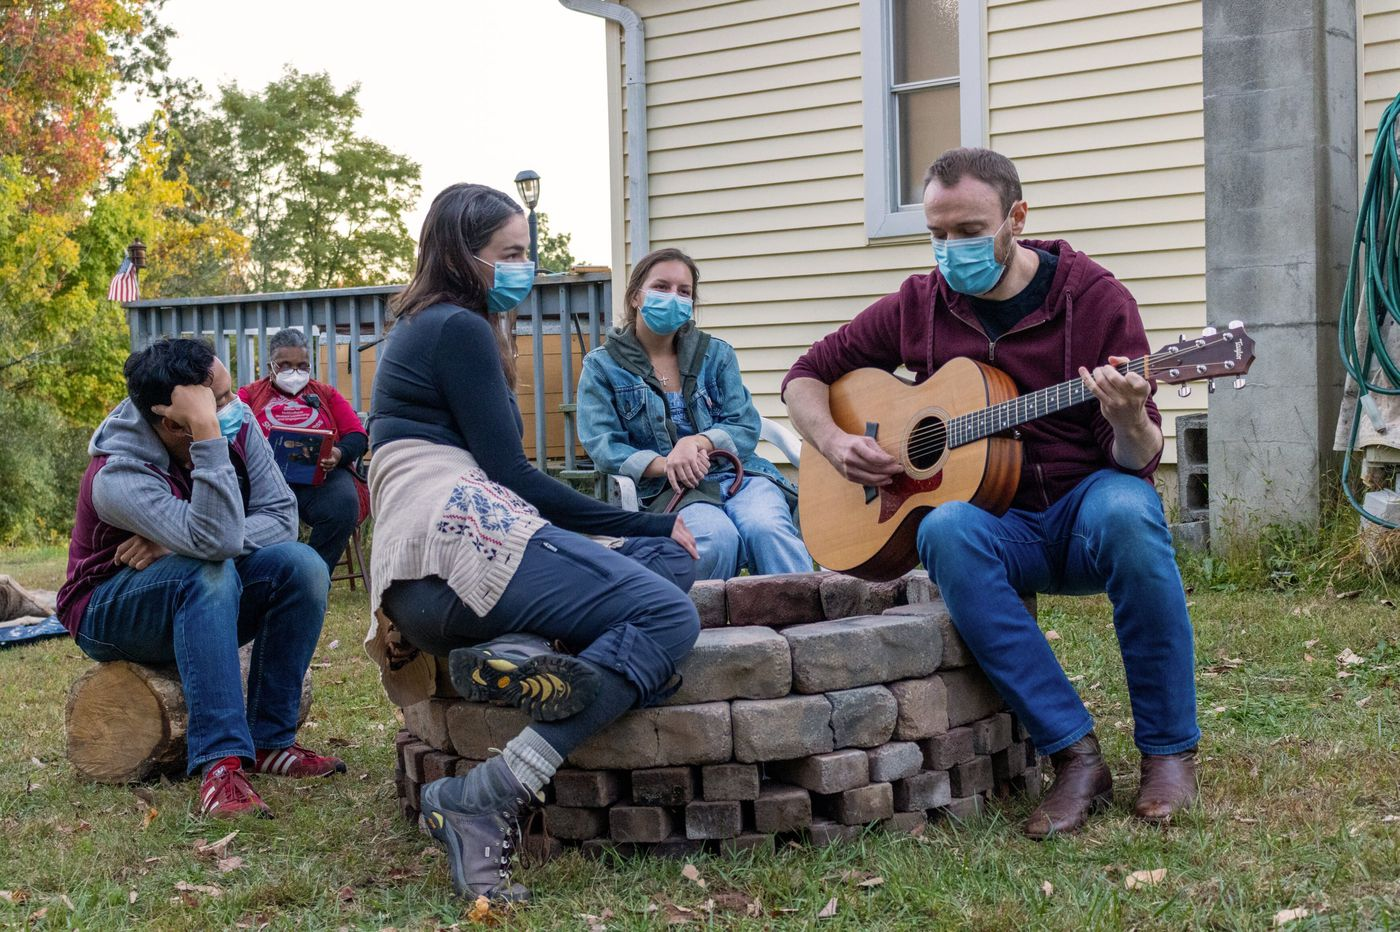 Wilma Theater created the season's hottest show in a quarantine bubble in the woods